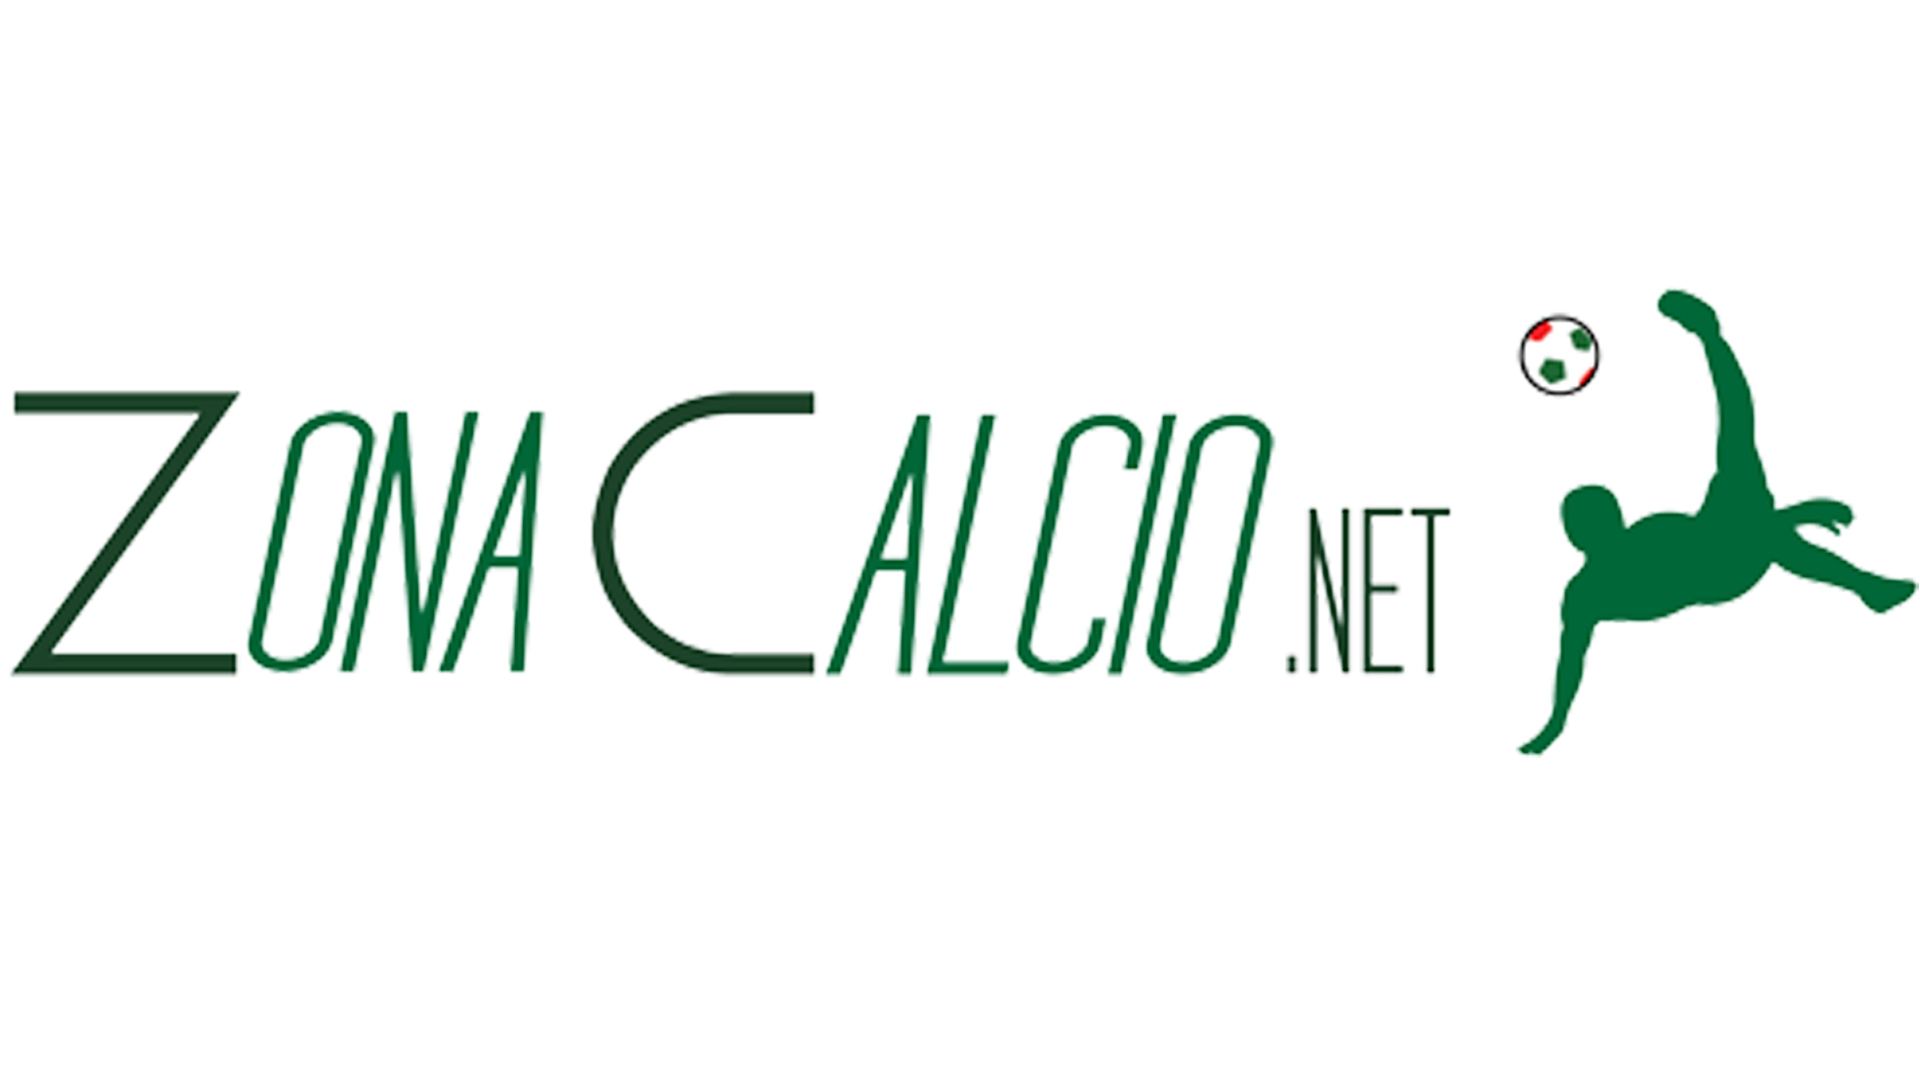 ZonaCalcio.net interview